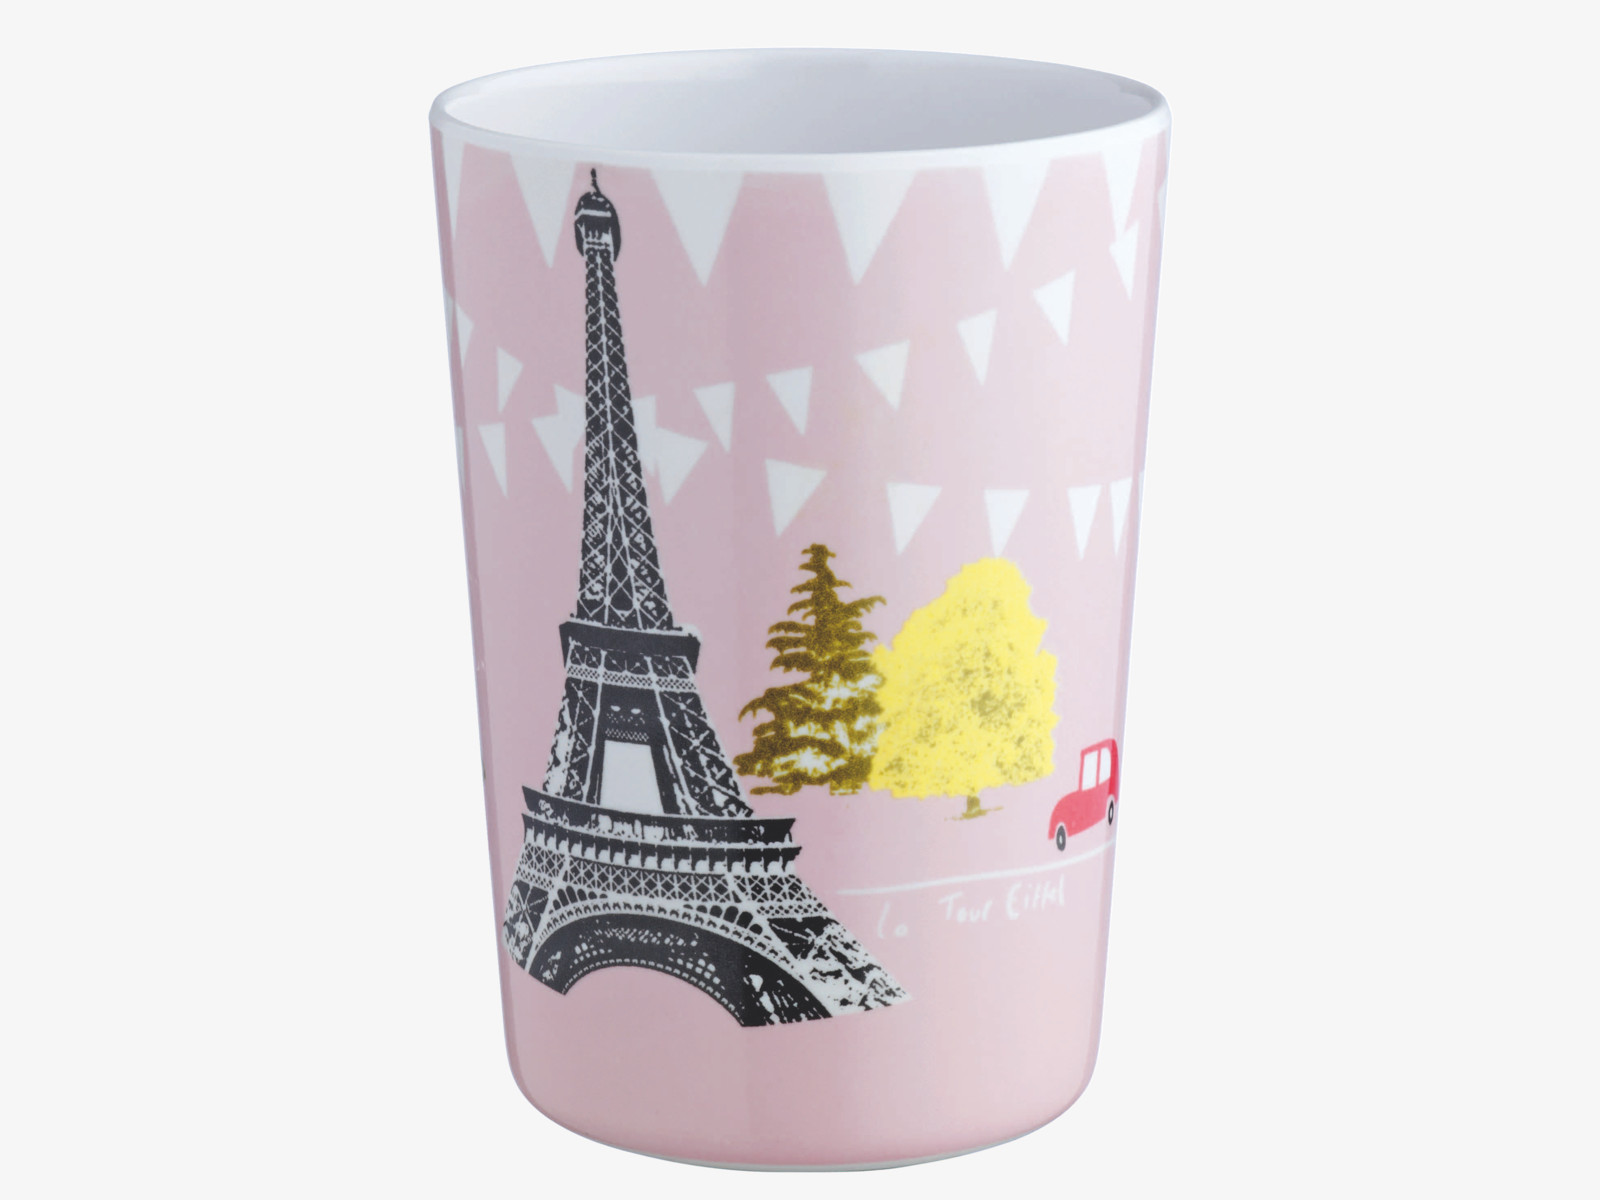 Designed-by-Lizzie-Allen-for-Habitat-this-melamine-beaker-captures-the-iconic-imagery-of-Paris-in-a-wallpaper-wp5404501